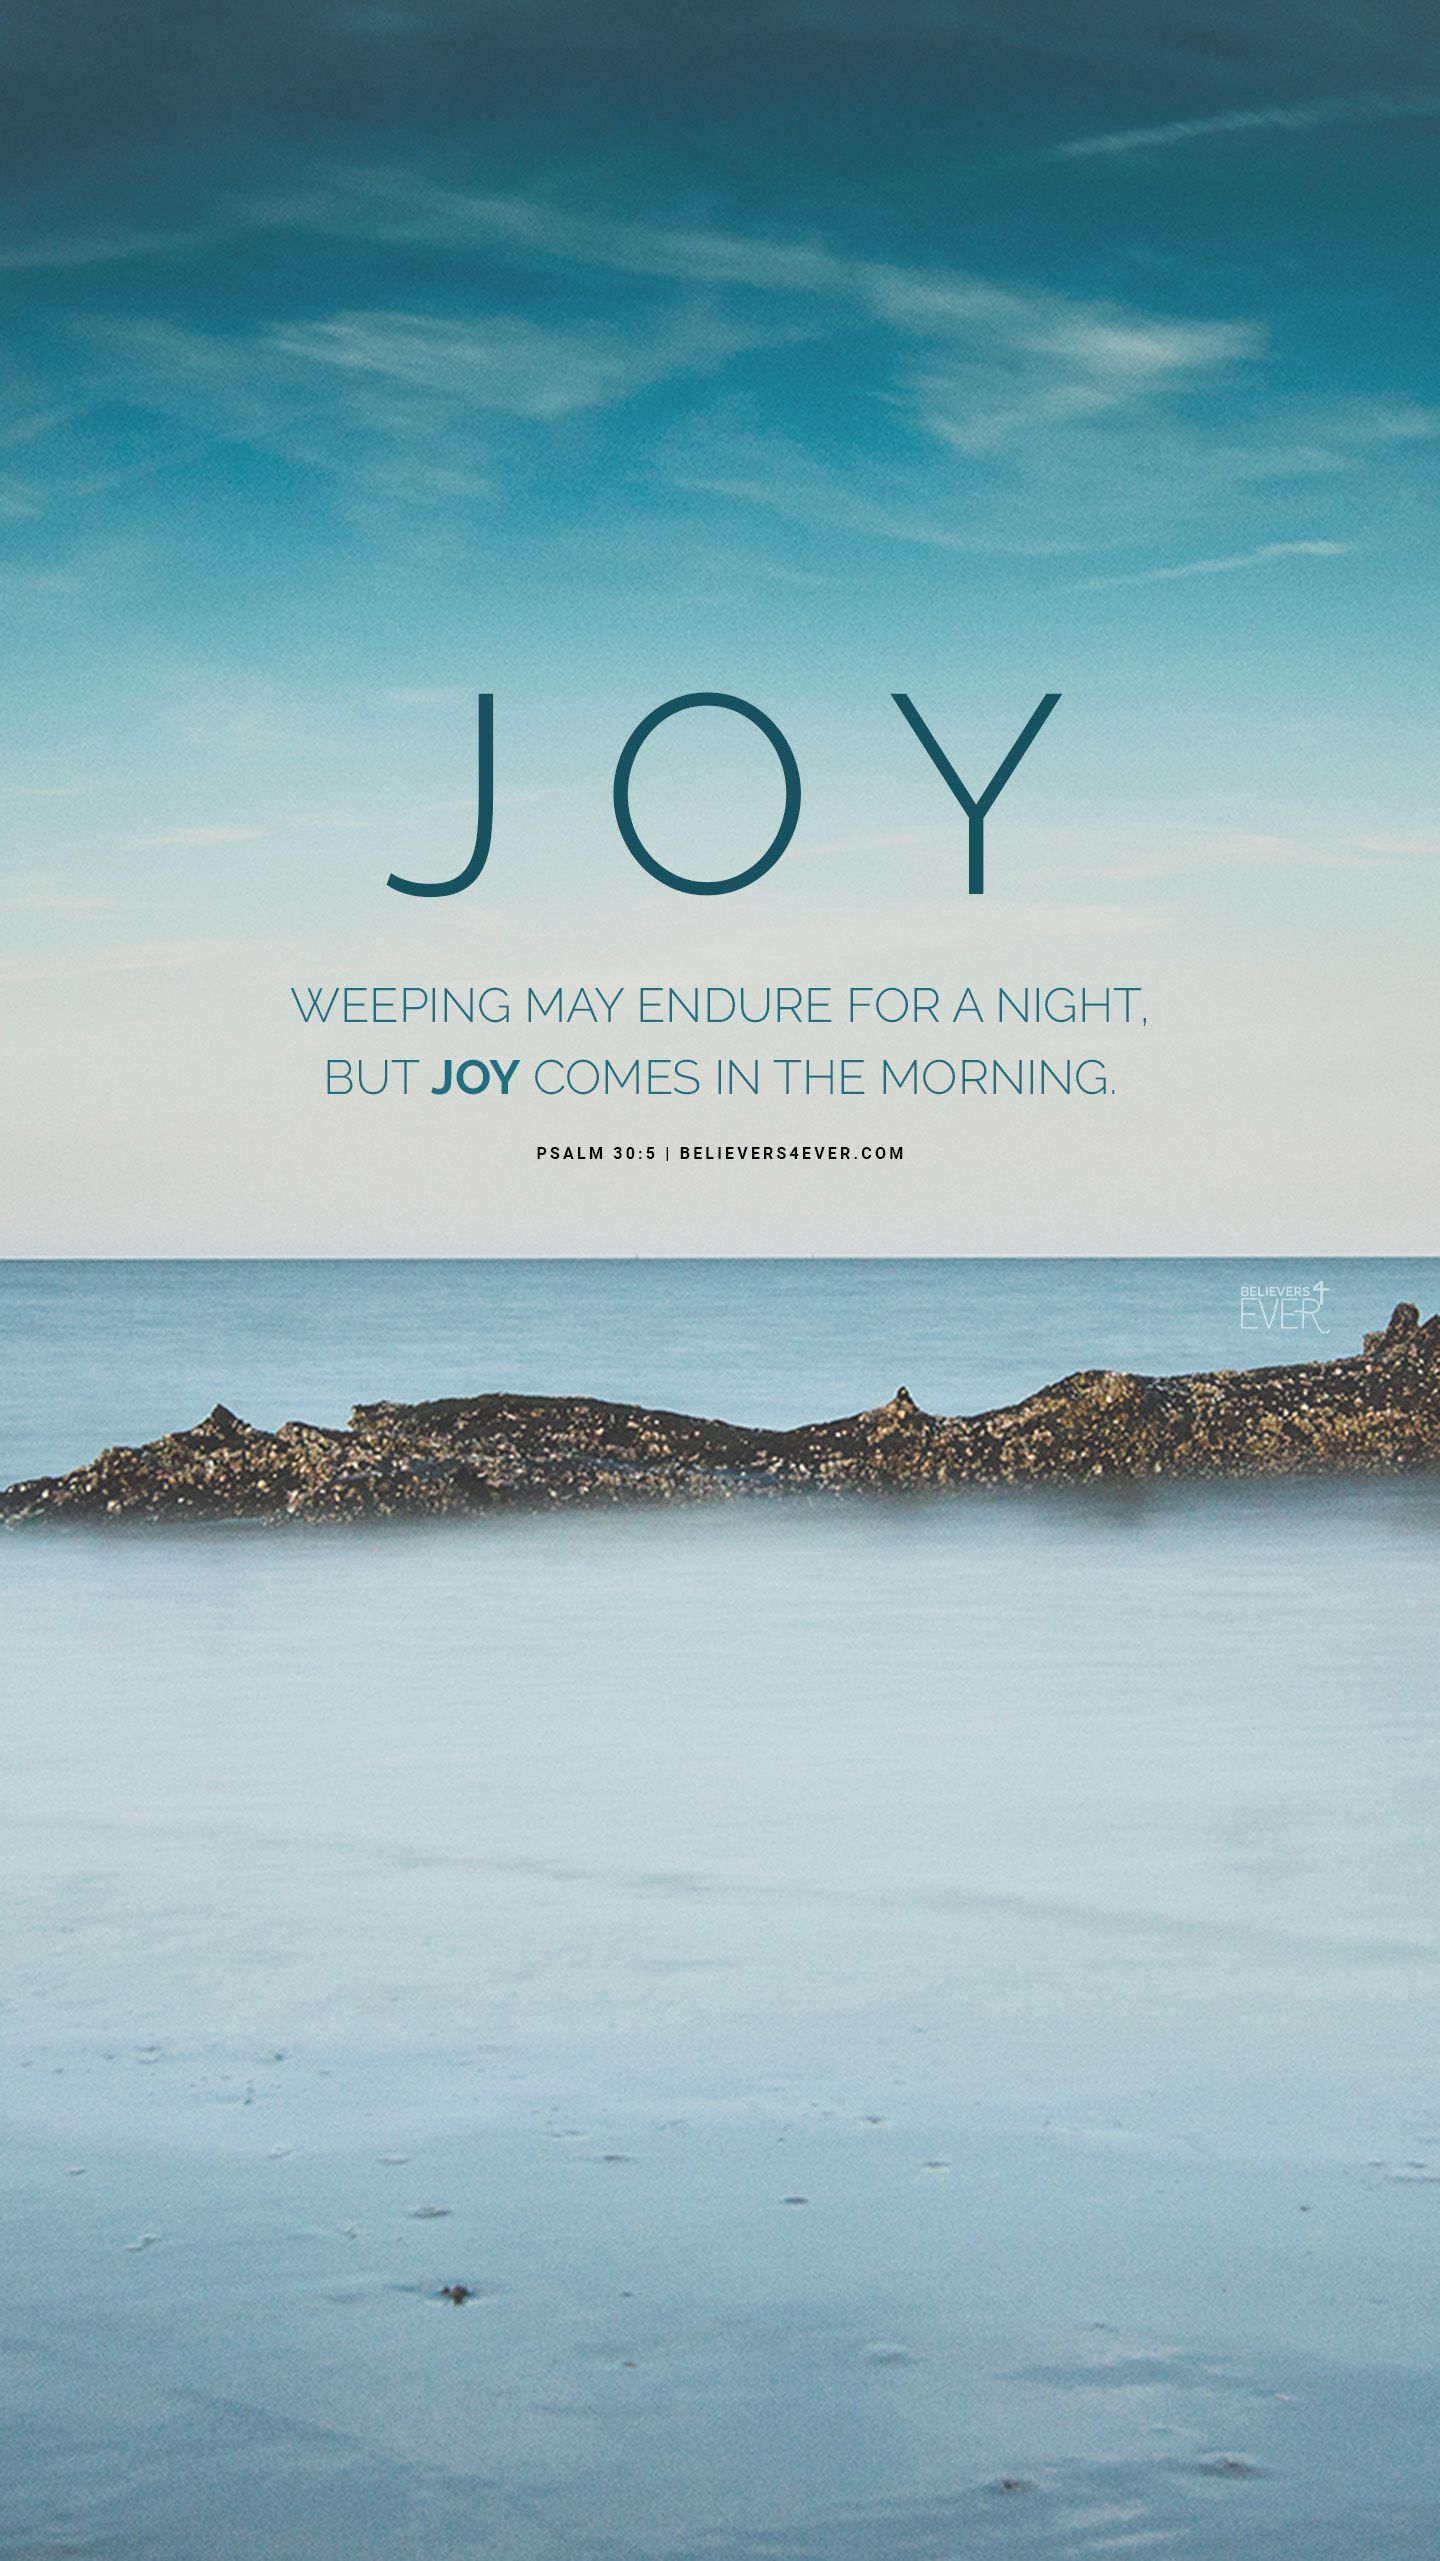 Joy comes in the morning Faith in Action Iphone wallpaper 1440x2561